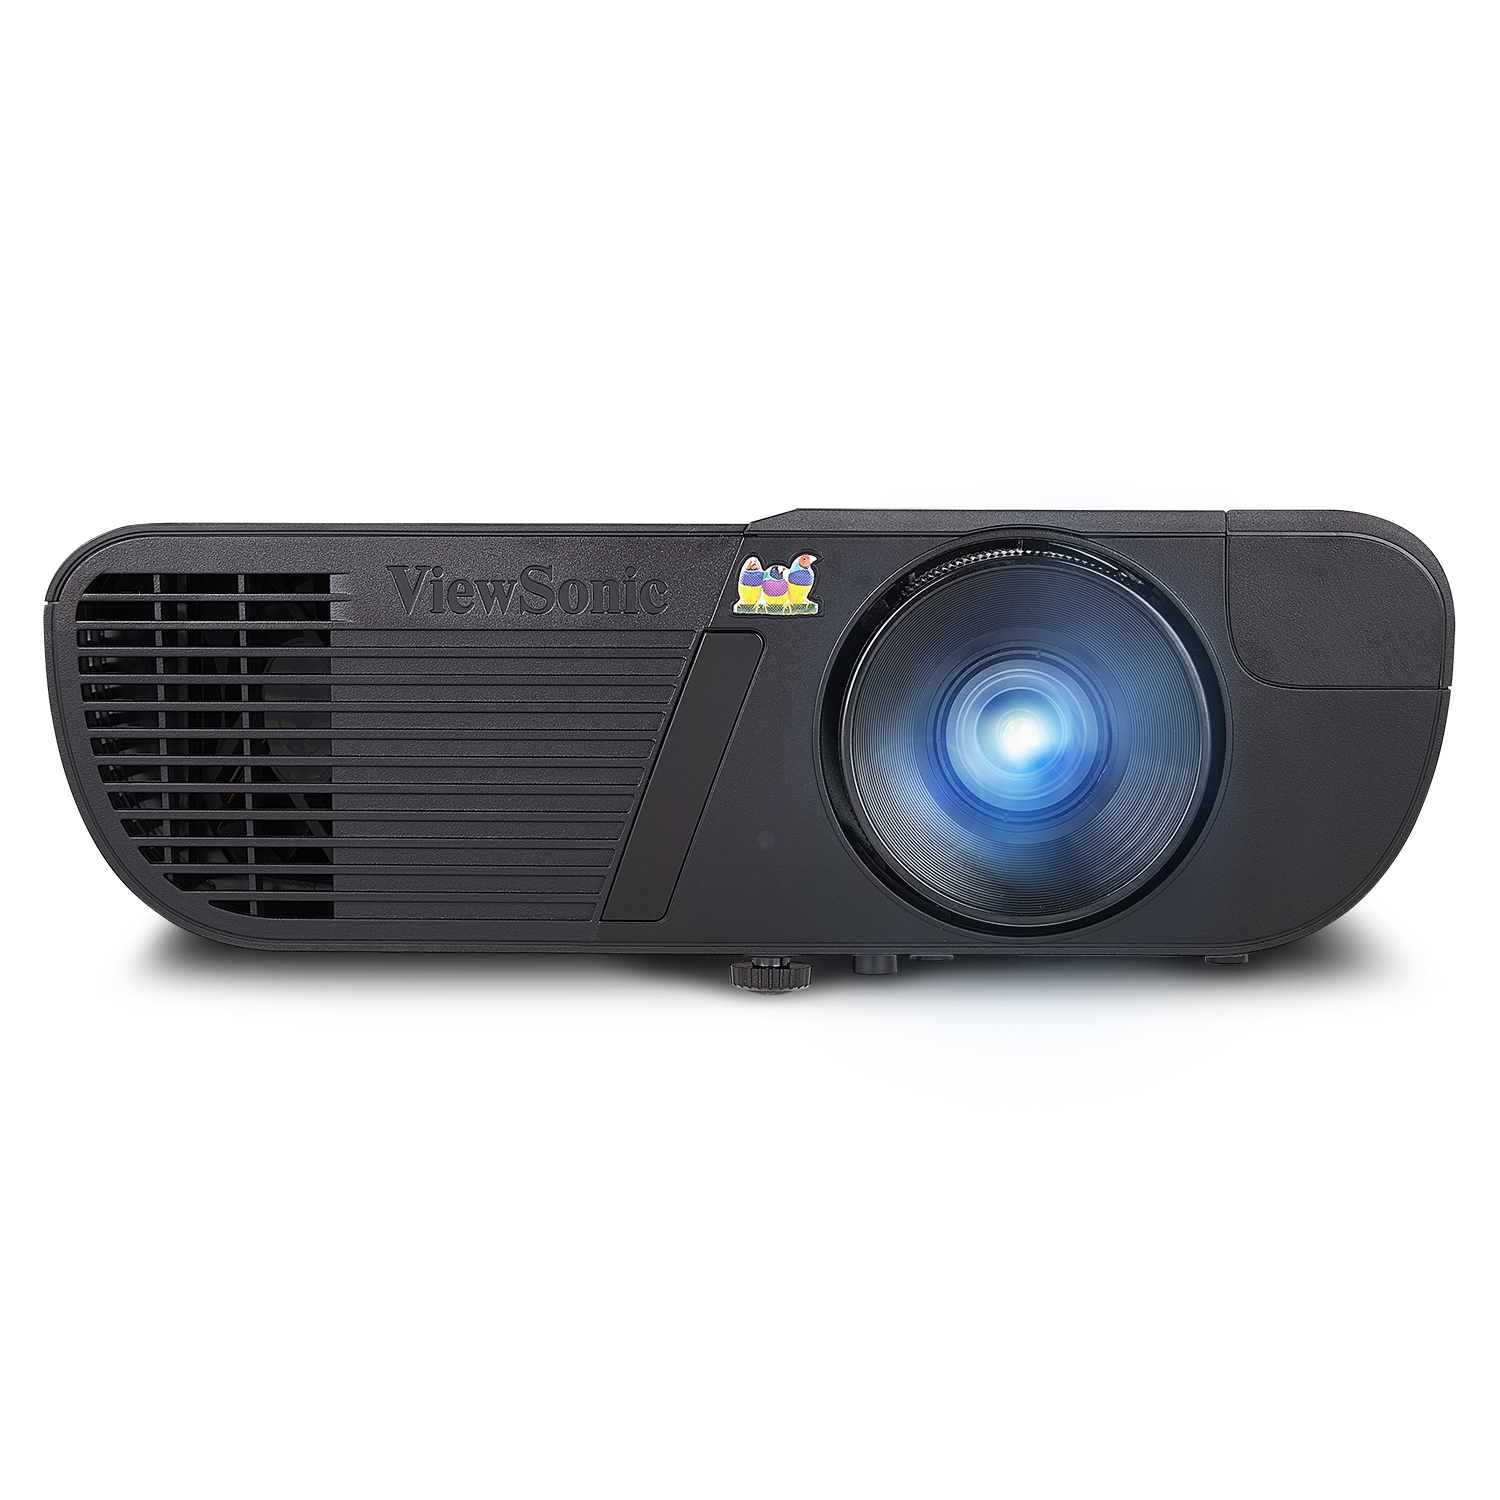 Viewsonic PJD6350 Desktop projector 3200ANSI lumens XGA (1024x768) 3D Black data projector